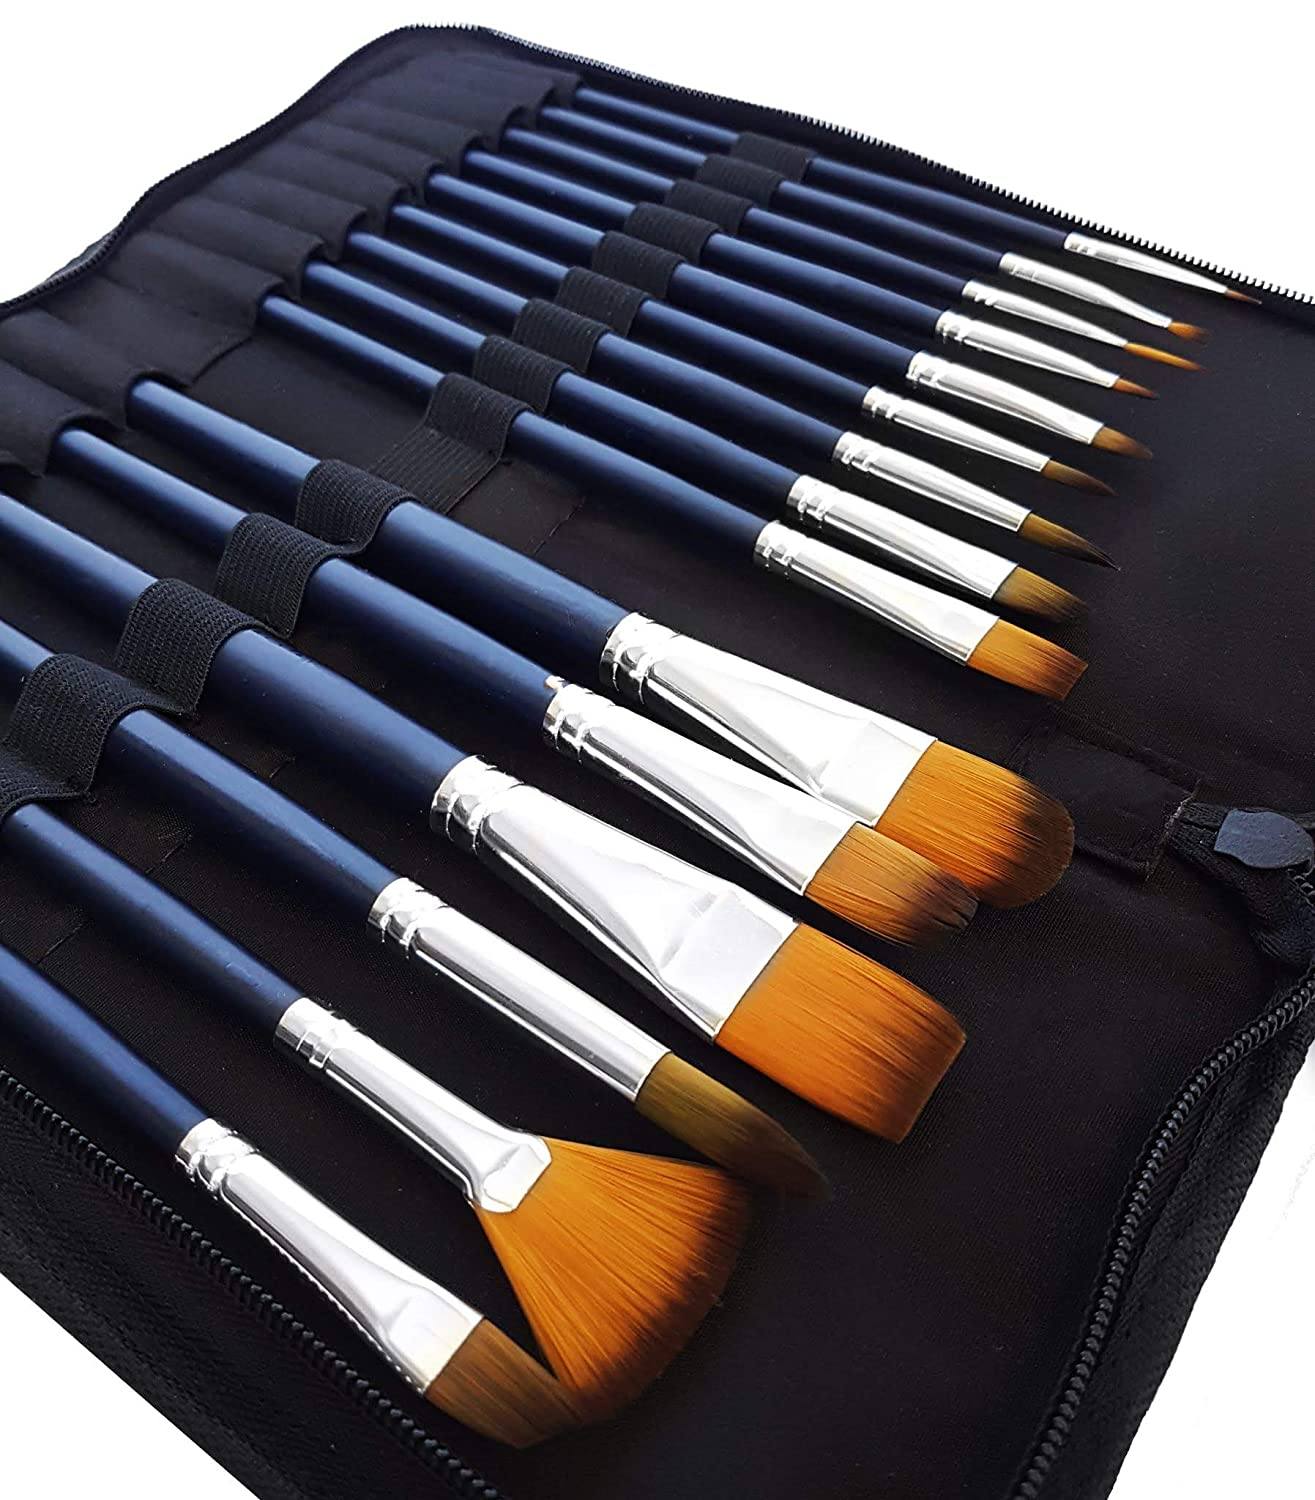 MozArt Supplies Watercolour Paint Brush Set - 15 Assorted Synthetic Hair Paint Brushes - Includes Portable Case with Brush Stand - High-Quality Artist Grade